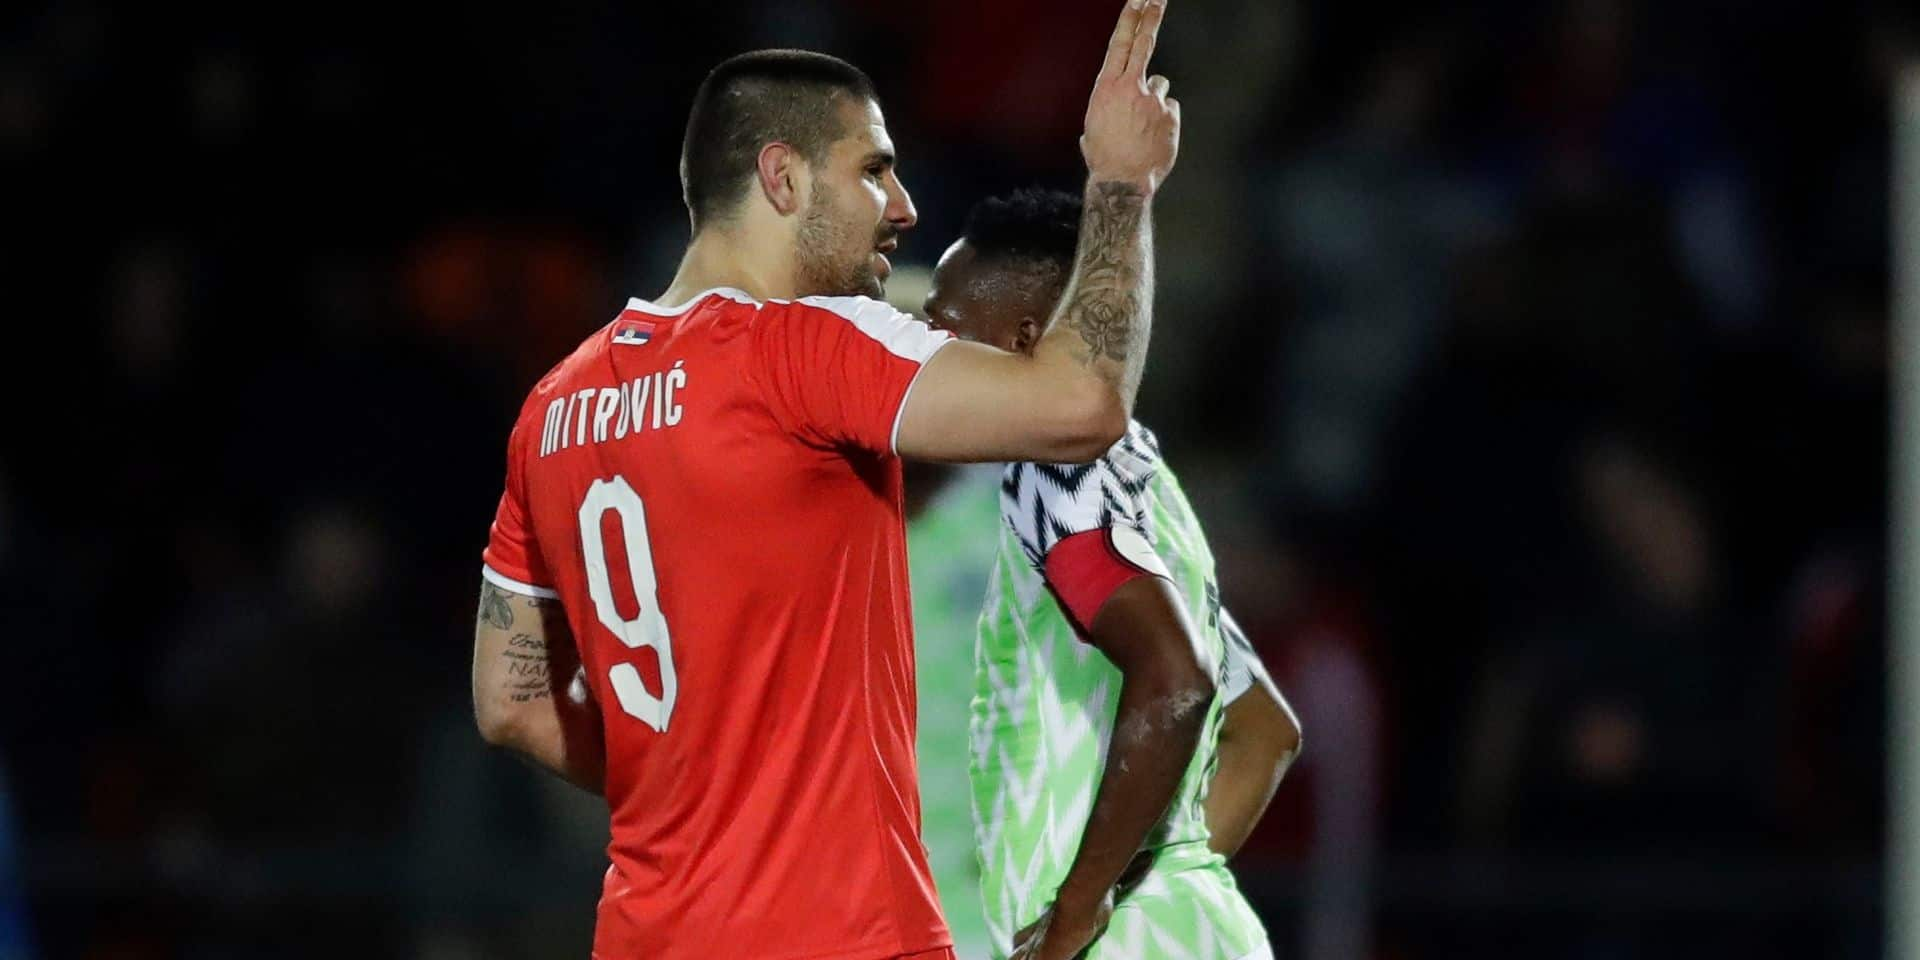 Serbia's Aleksandar Mitrovic celebrates scoring his second goal during the international friendly soccer match between Serbia and Nigeria at The Hive Stadium in London, Tuesday, March 27, 2018. (AP Photo/Matt Dunham)